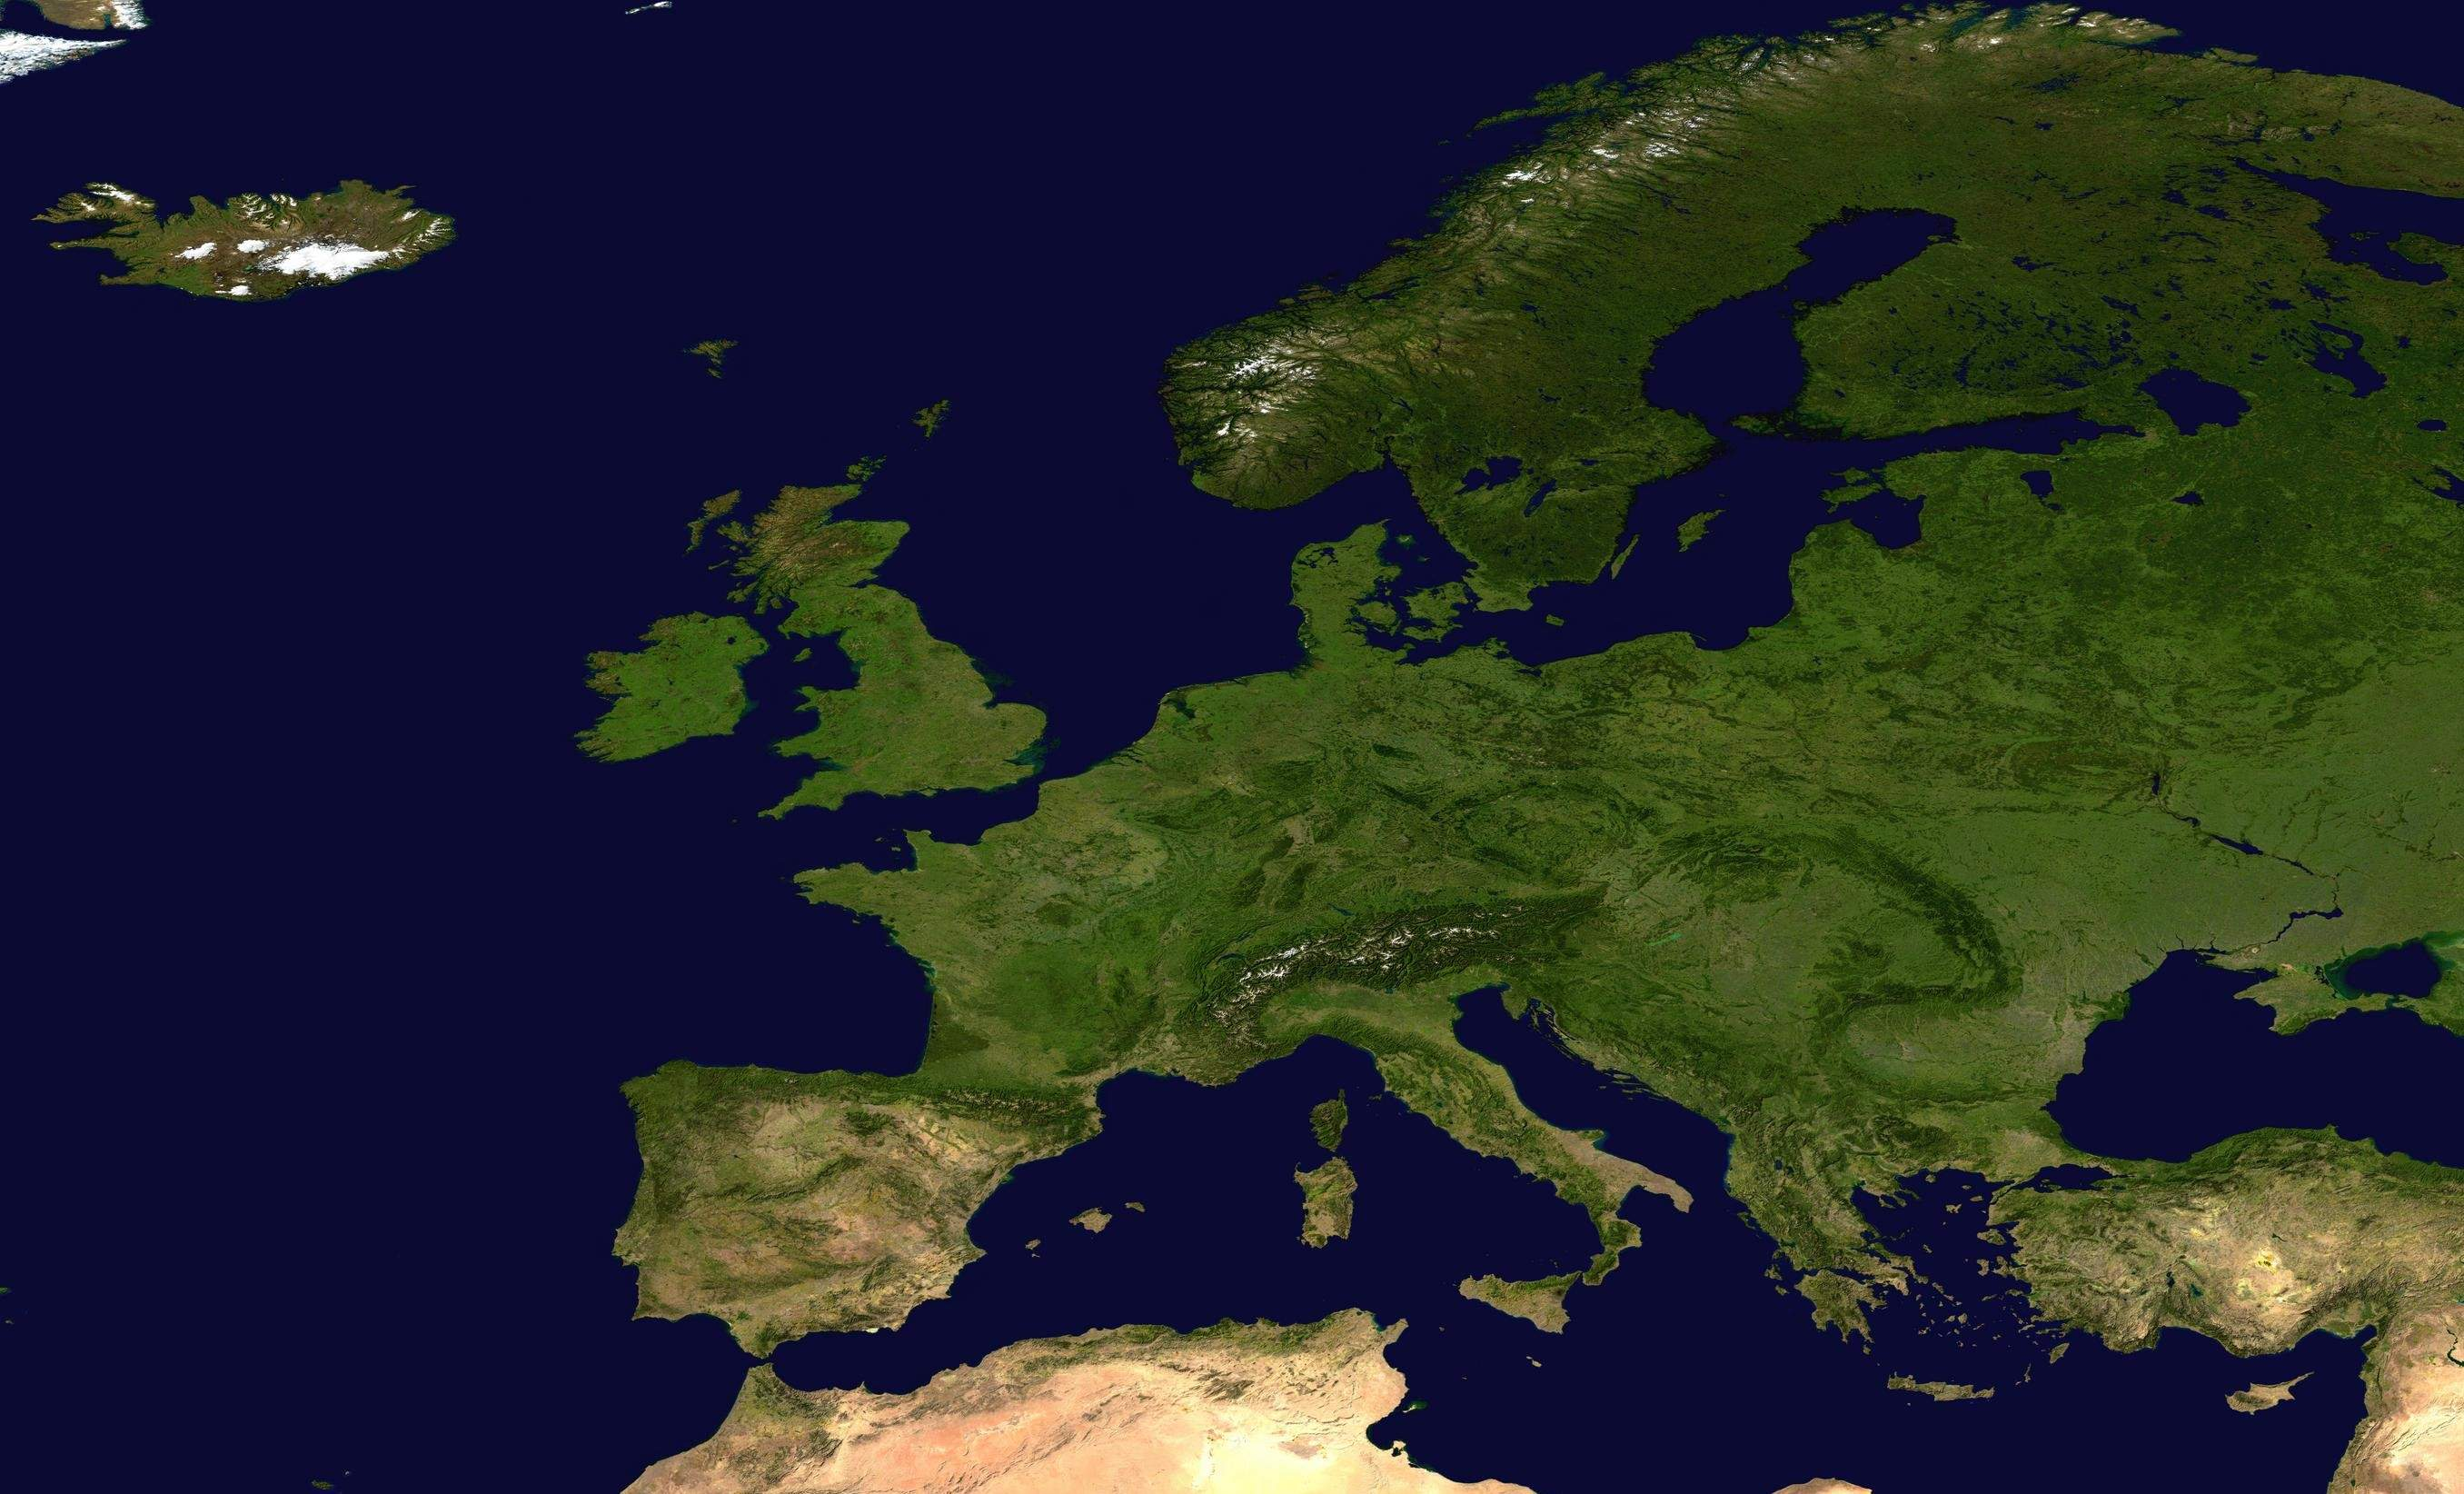 Europe Nasa Satellite Mapsofnet - Europe satellite map